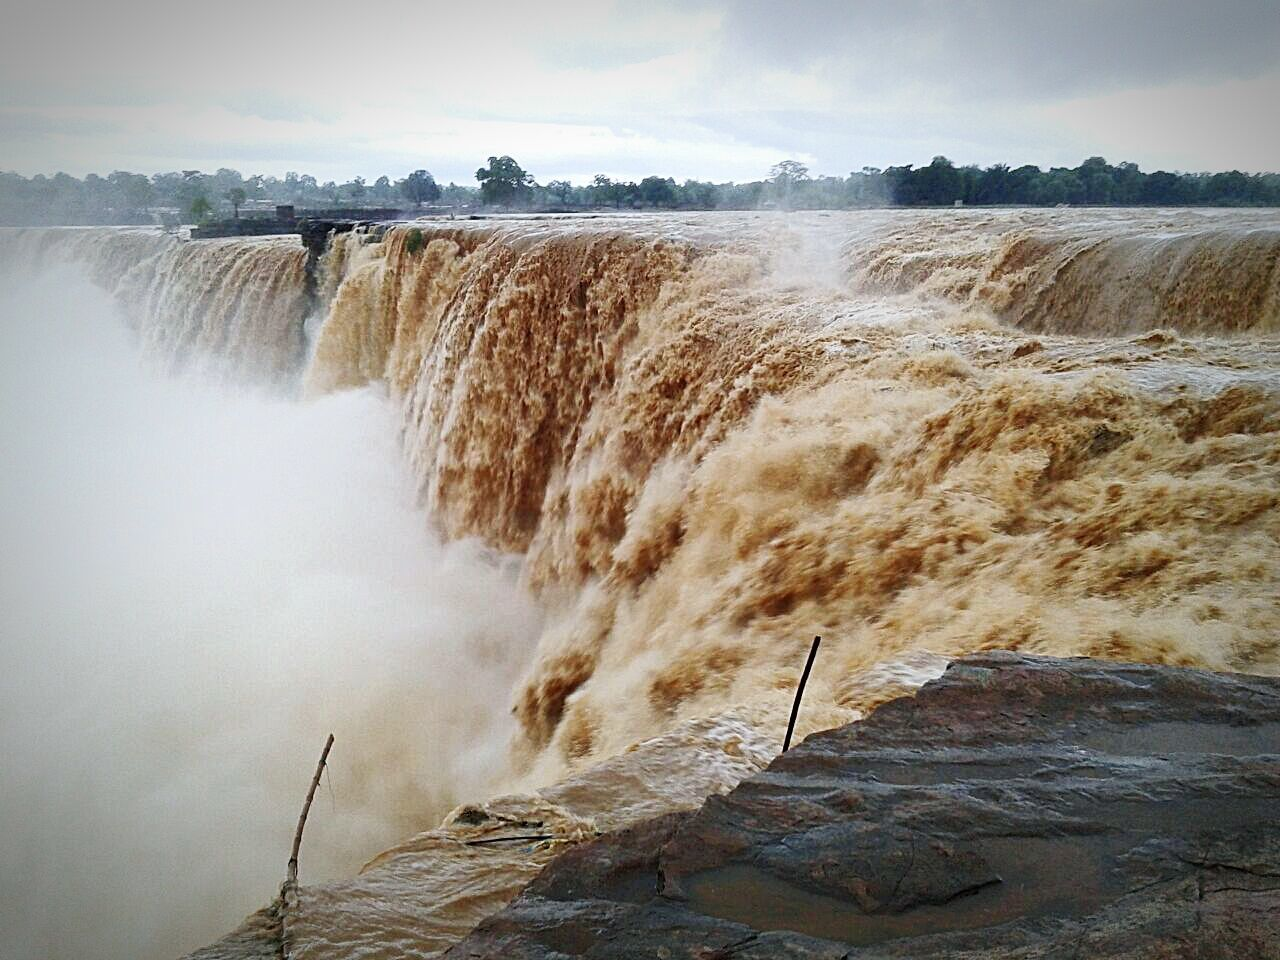 Chitrkot, asia's largest waterfall.